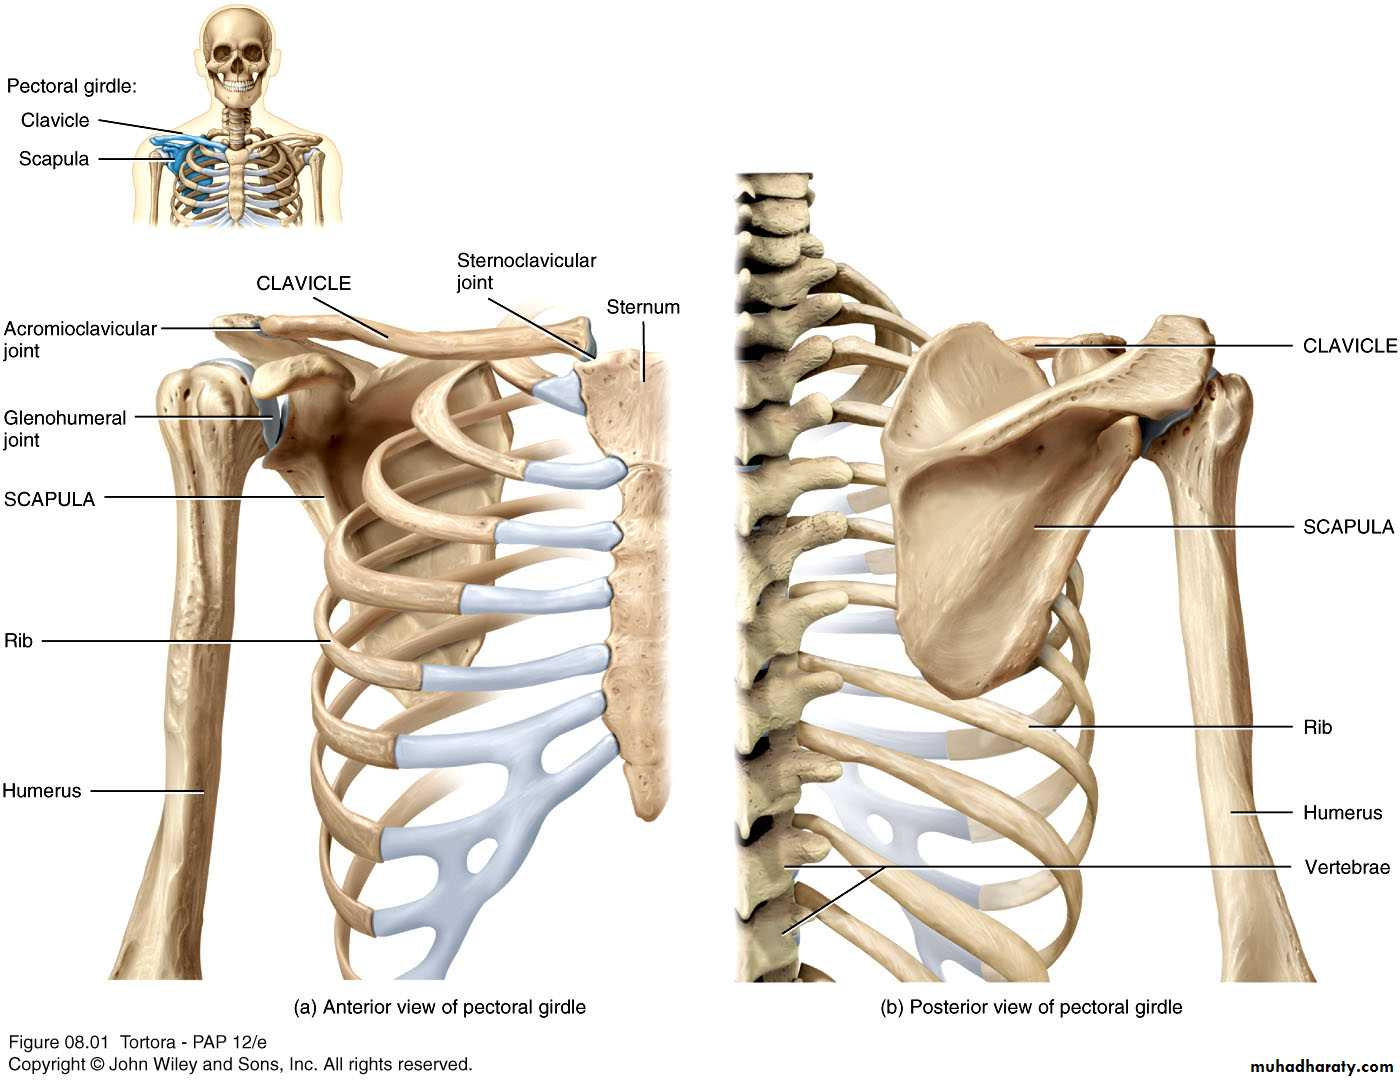 the primary function of the pectoral girdle is to